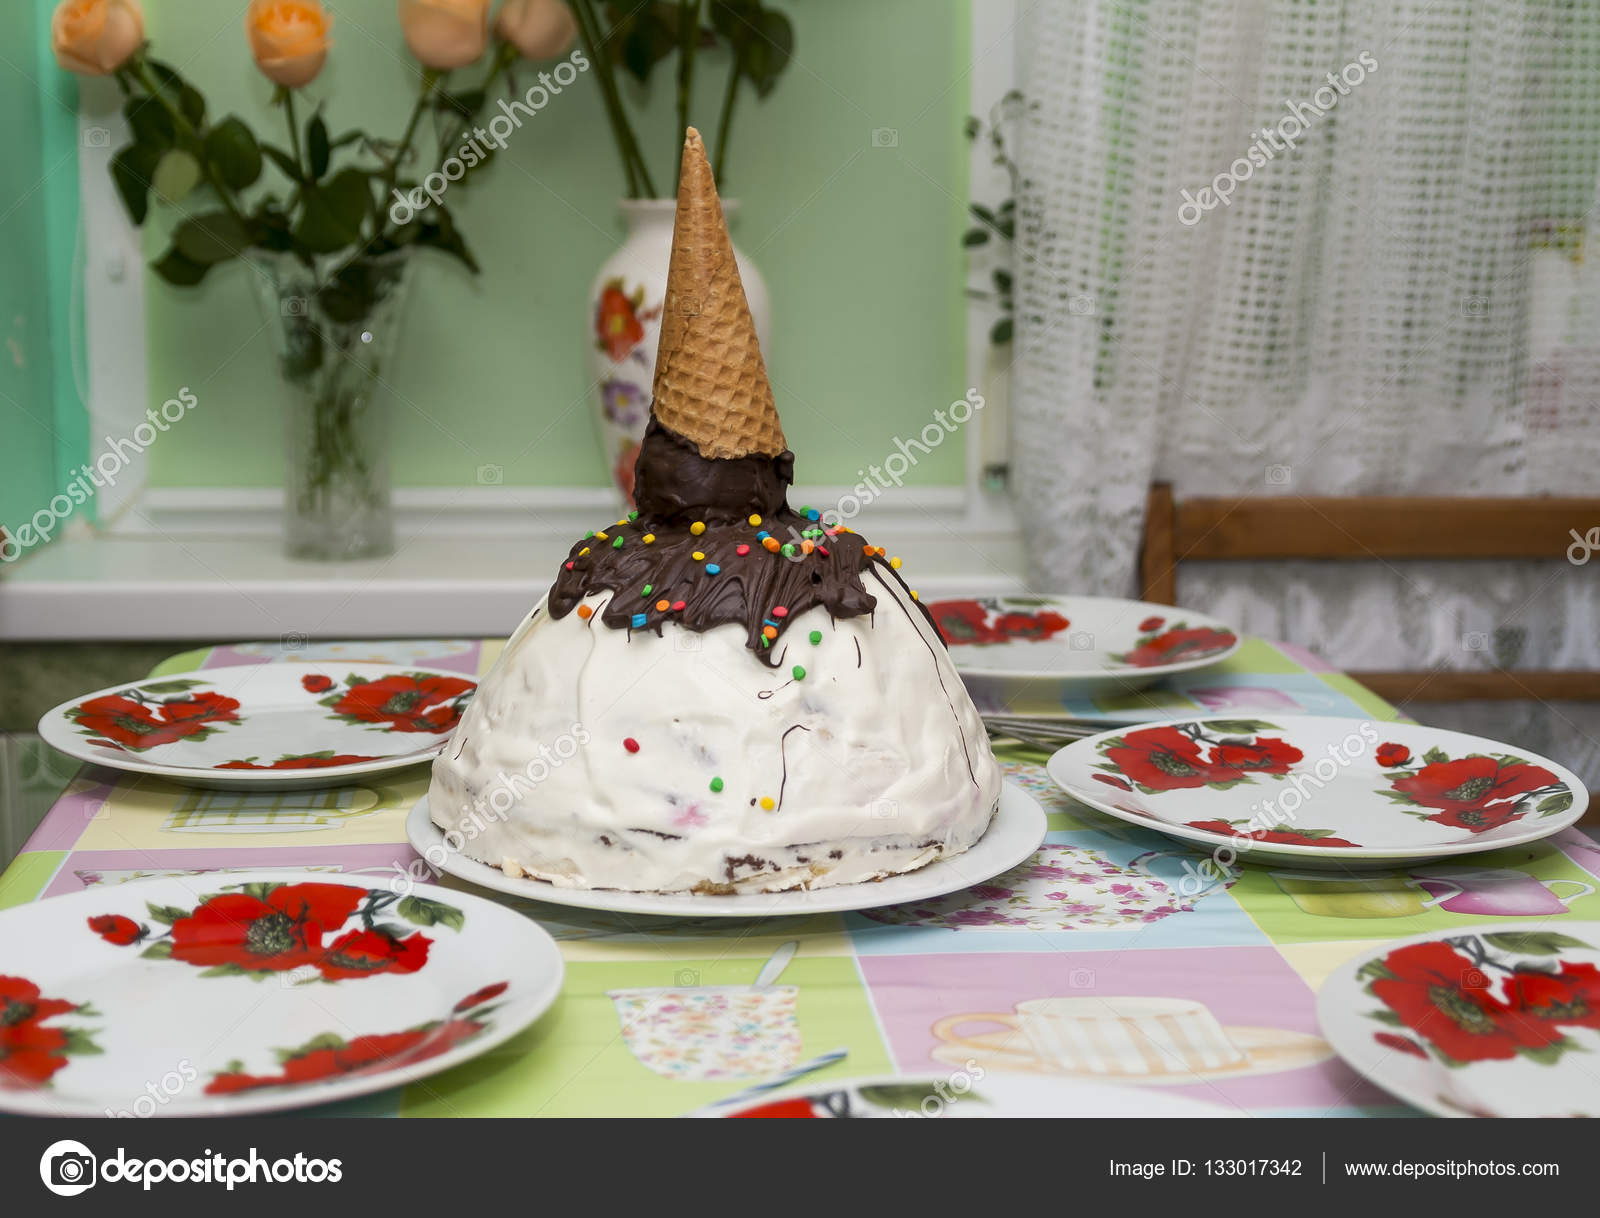 Birthday Cake In The Form Of A Cone With Ice Cream On Table Stock Image